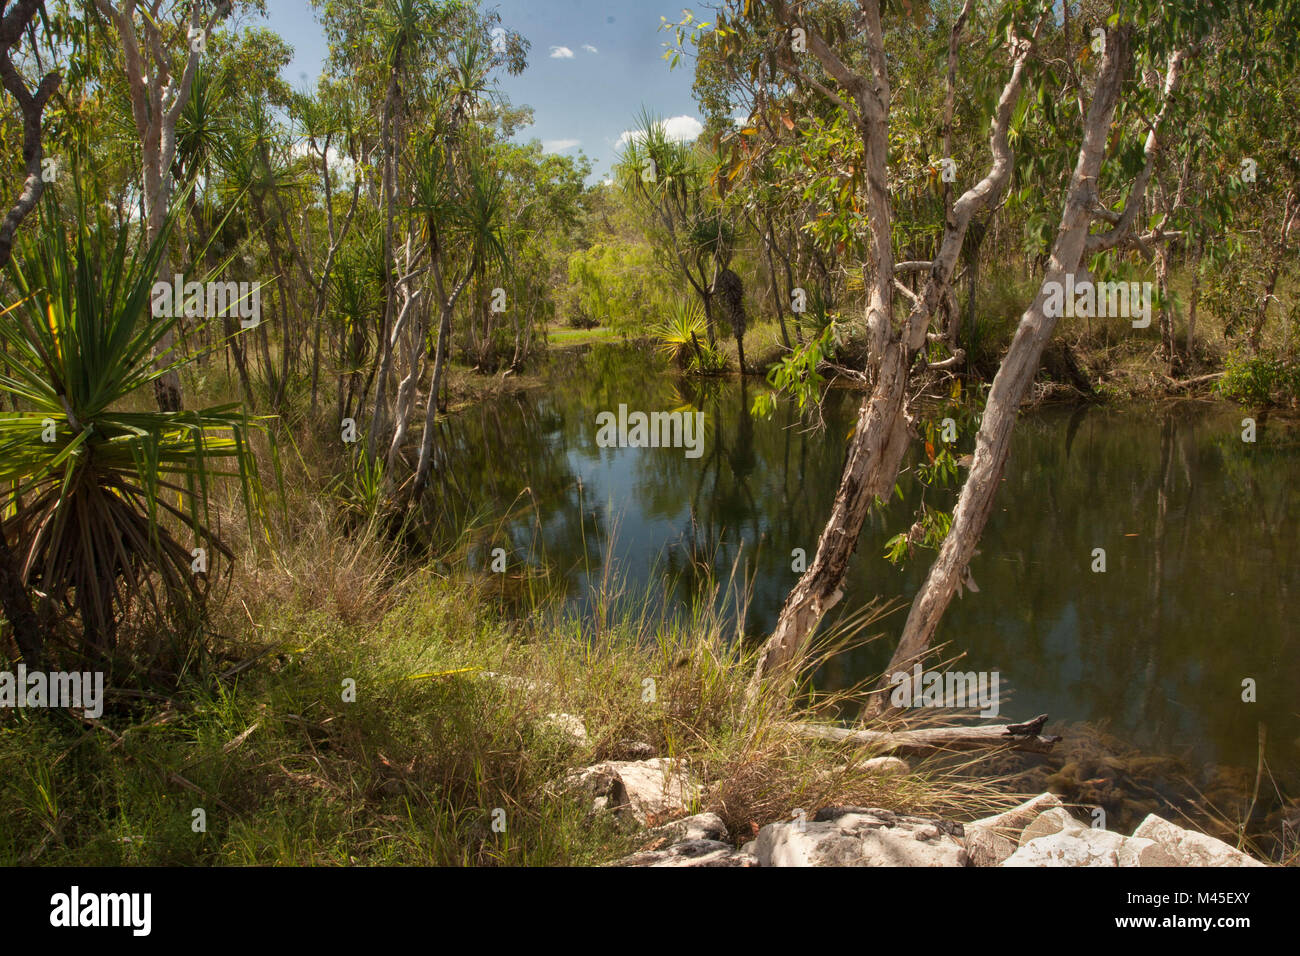 Outback landscape in the Northern Territory of australia - Stock Image